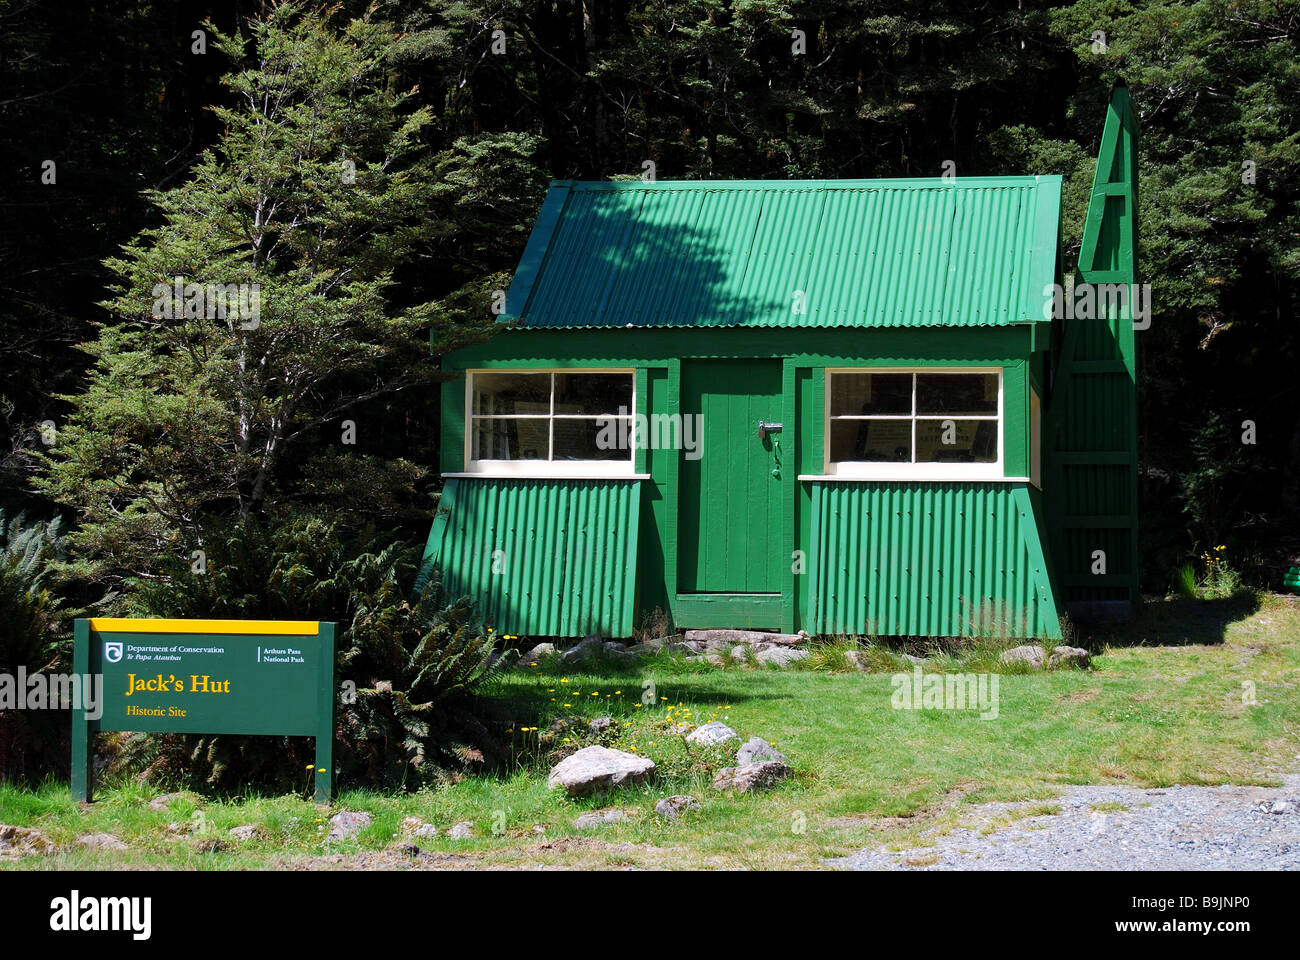 Jacks Hut Arthurs Pass National Park Canterbury South Island New Zealand